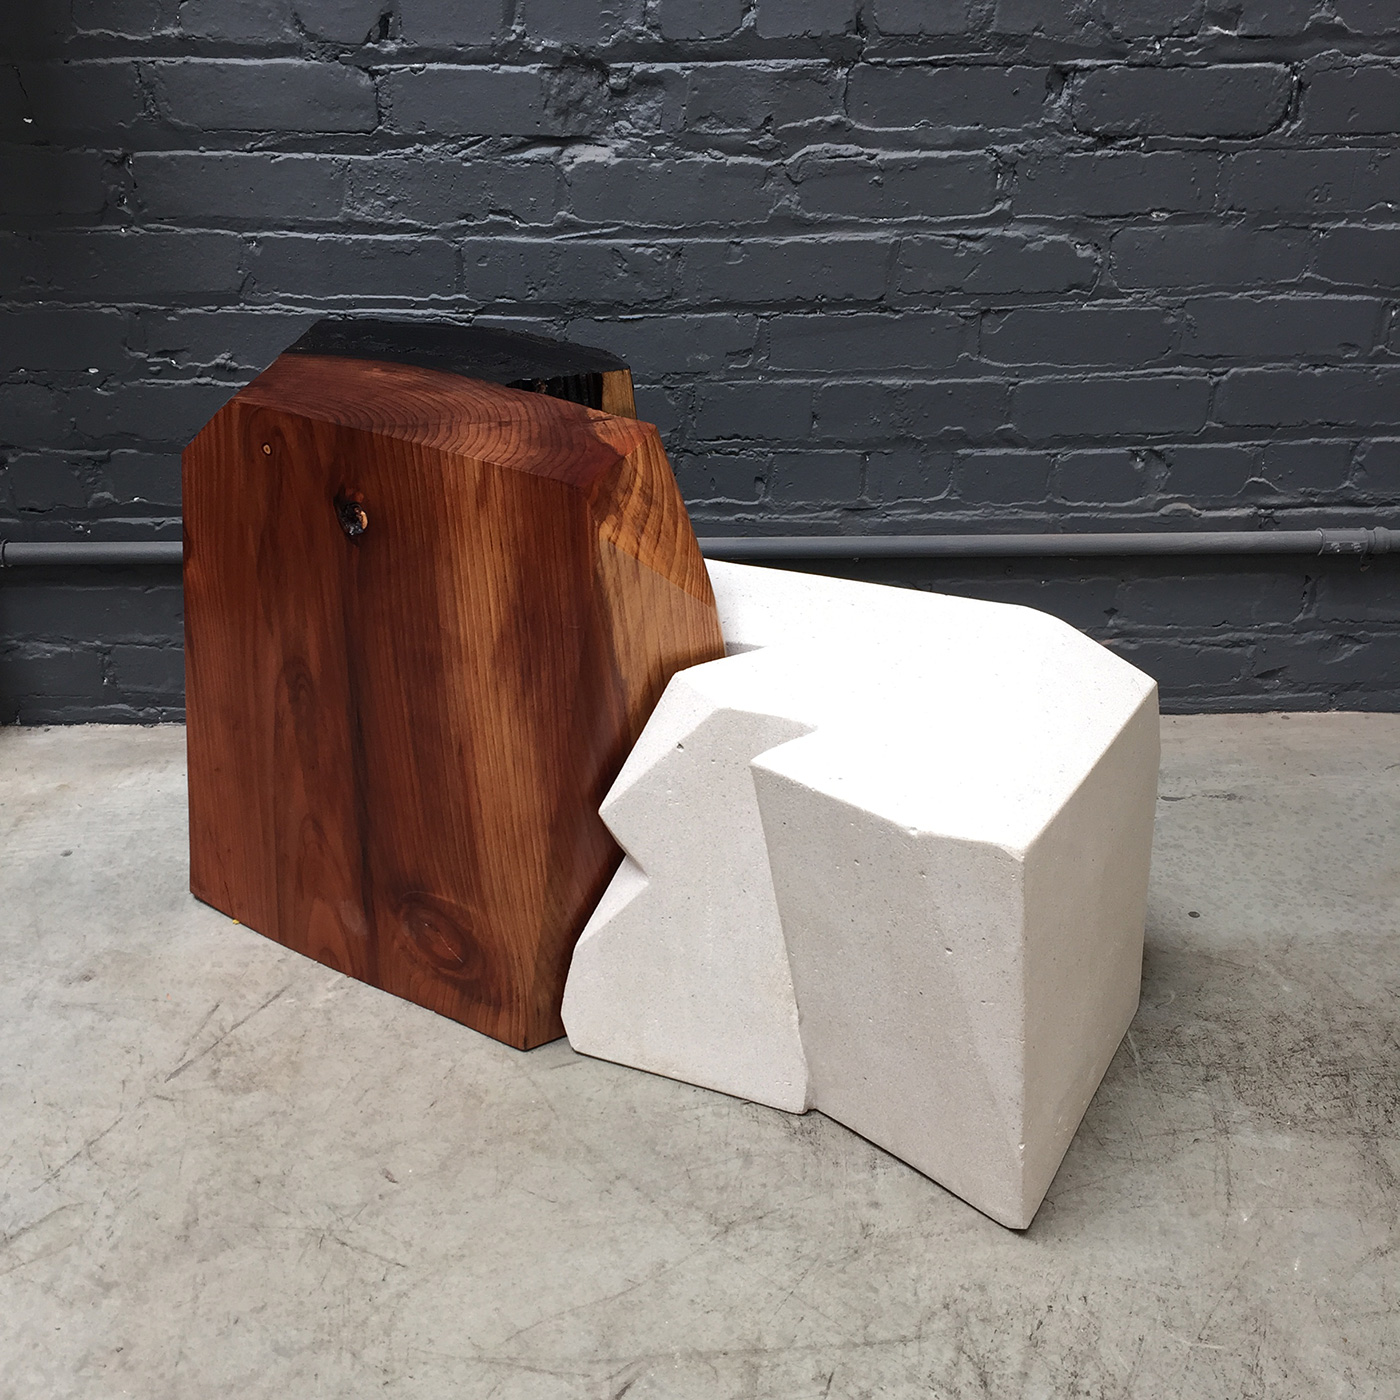 ReUpped. Fire & Ice, 2015. Redwood and concrete, 20 x 36 x 14 in.